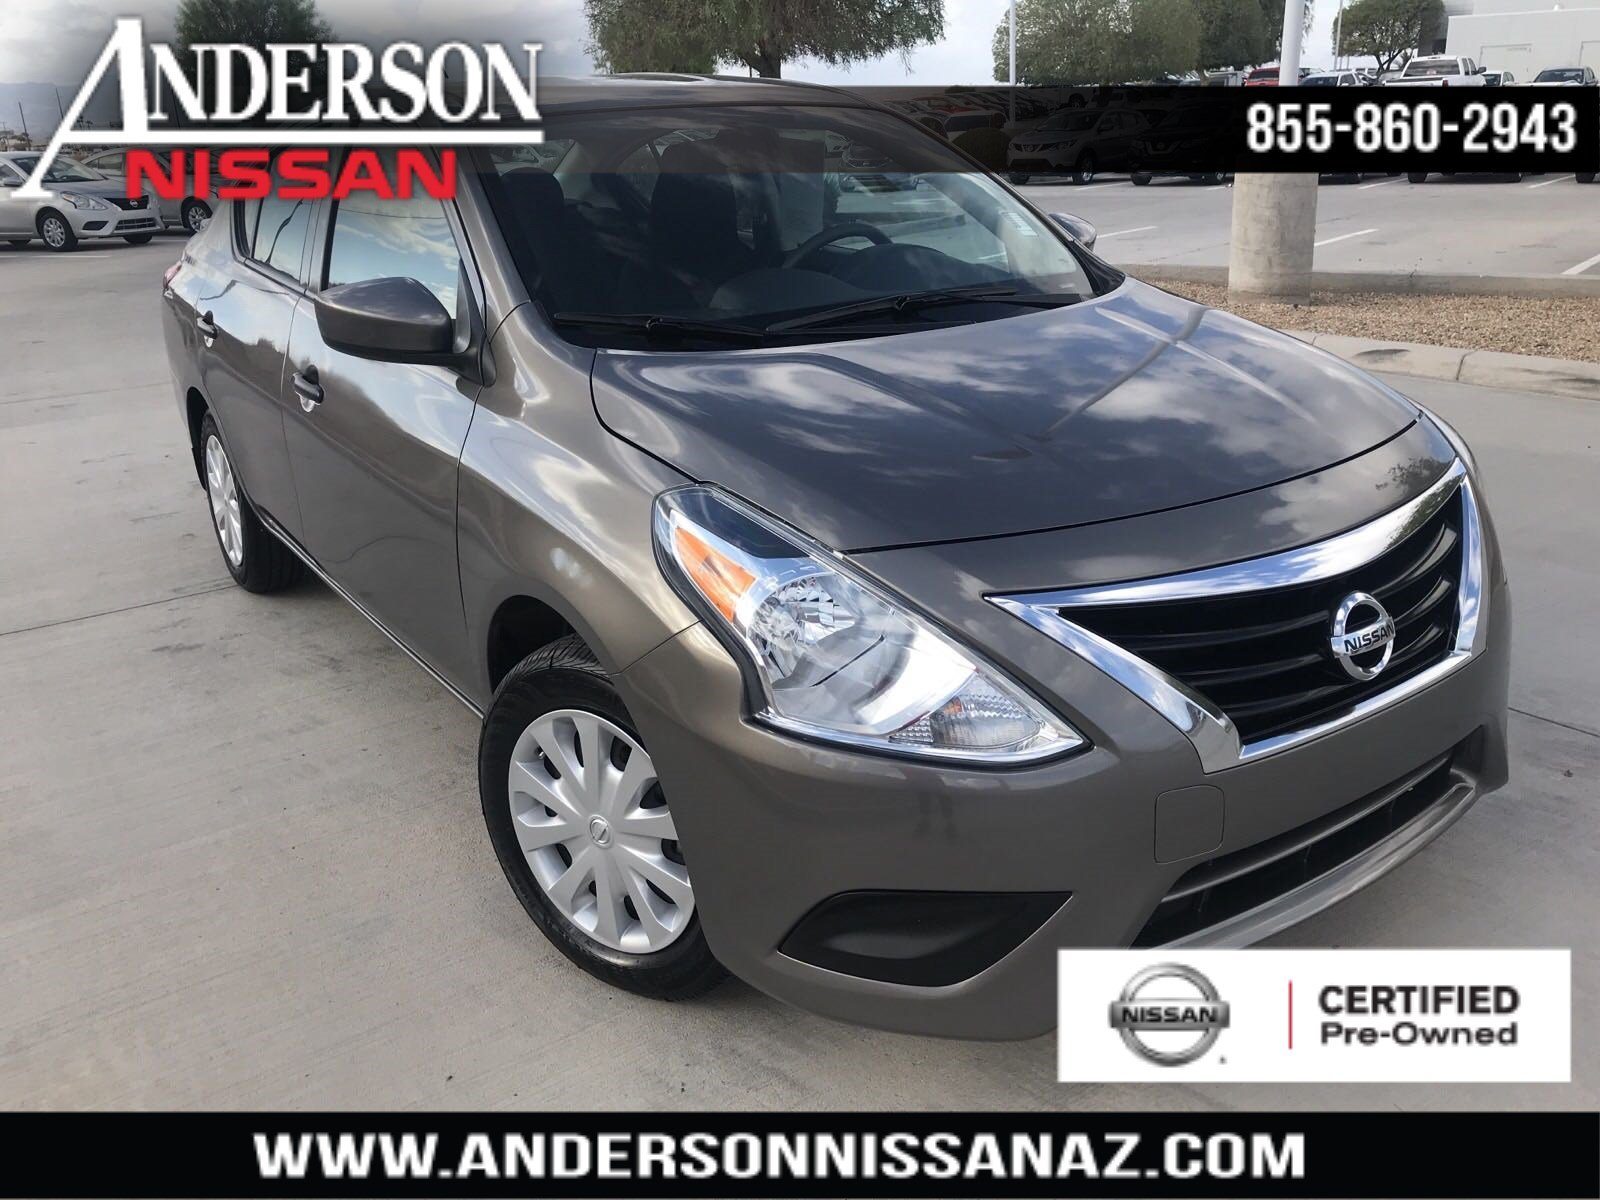 Certified Pre-Owned 2016 Nissan Versa 1.6 S Plus